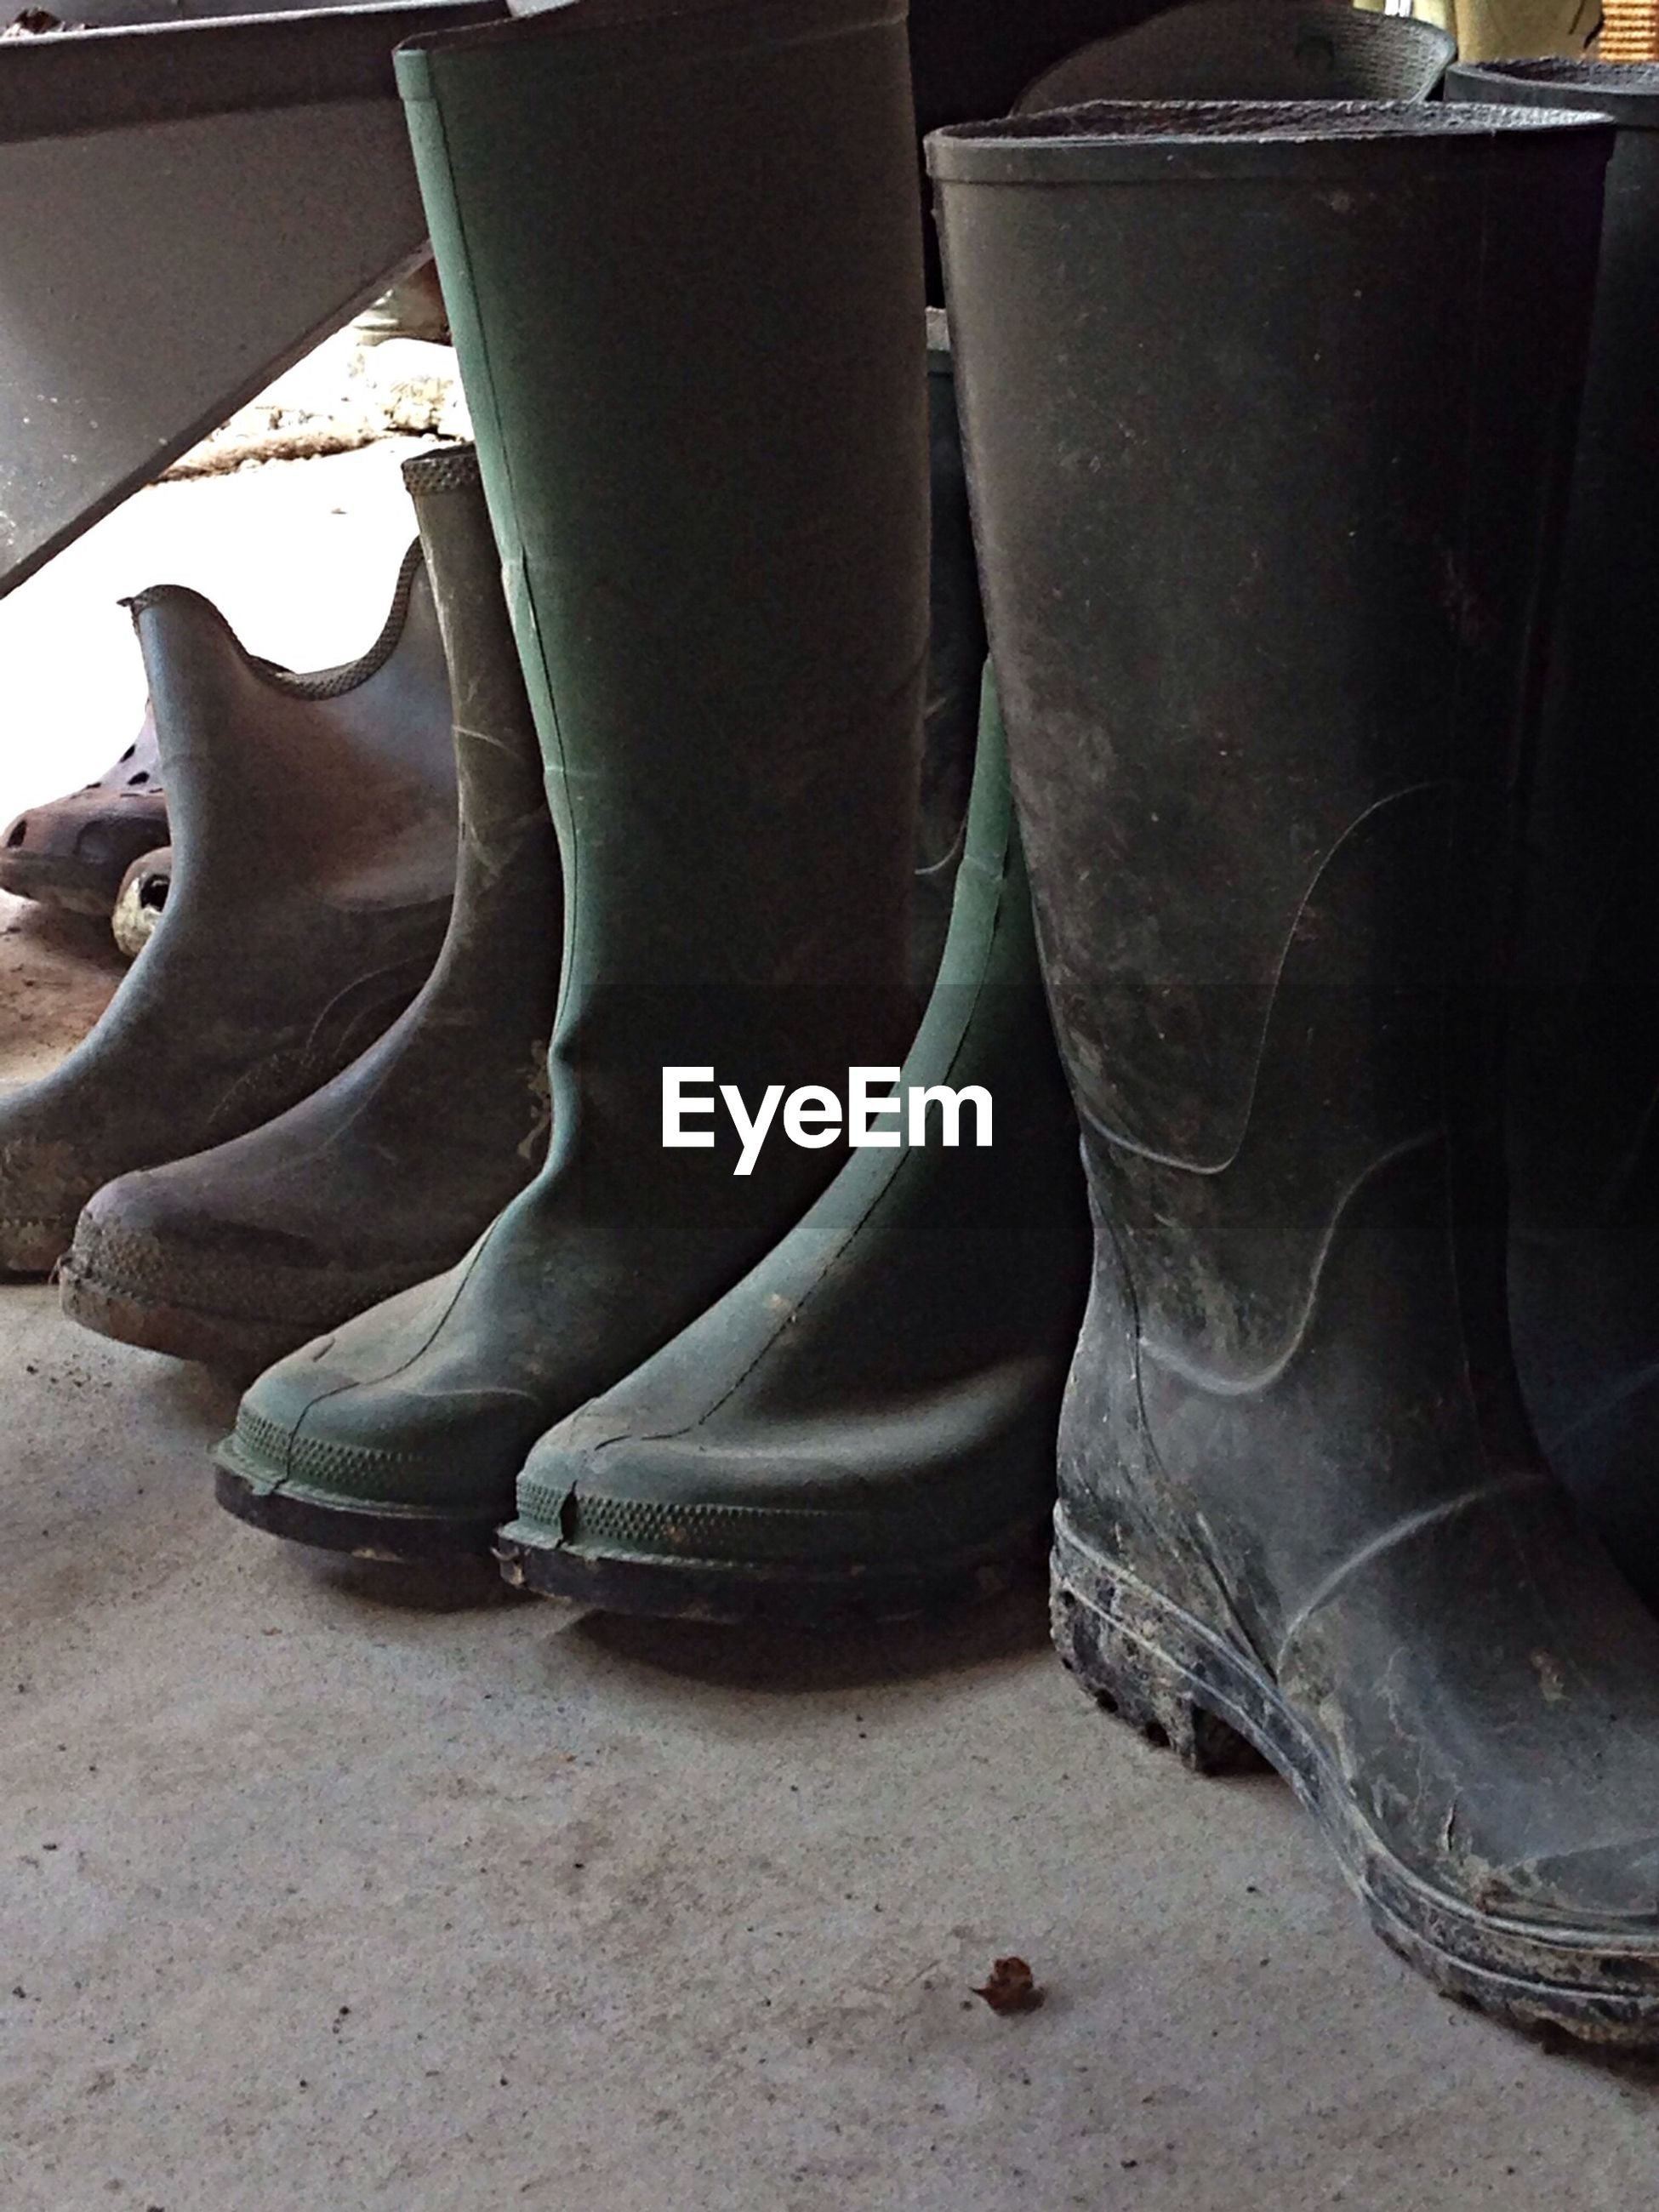 Wellingtons covered in mud